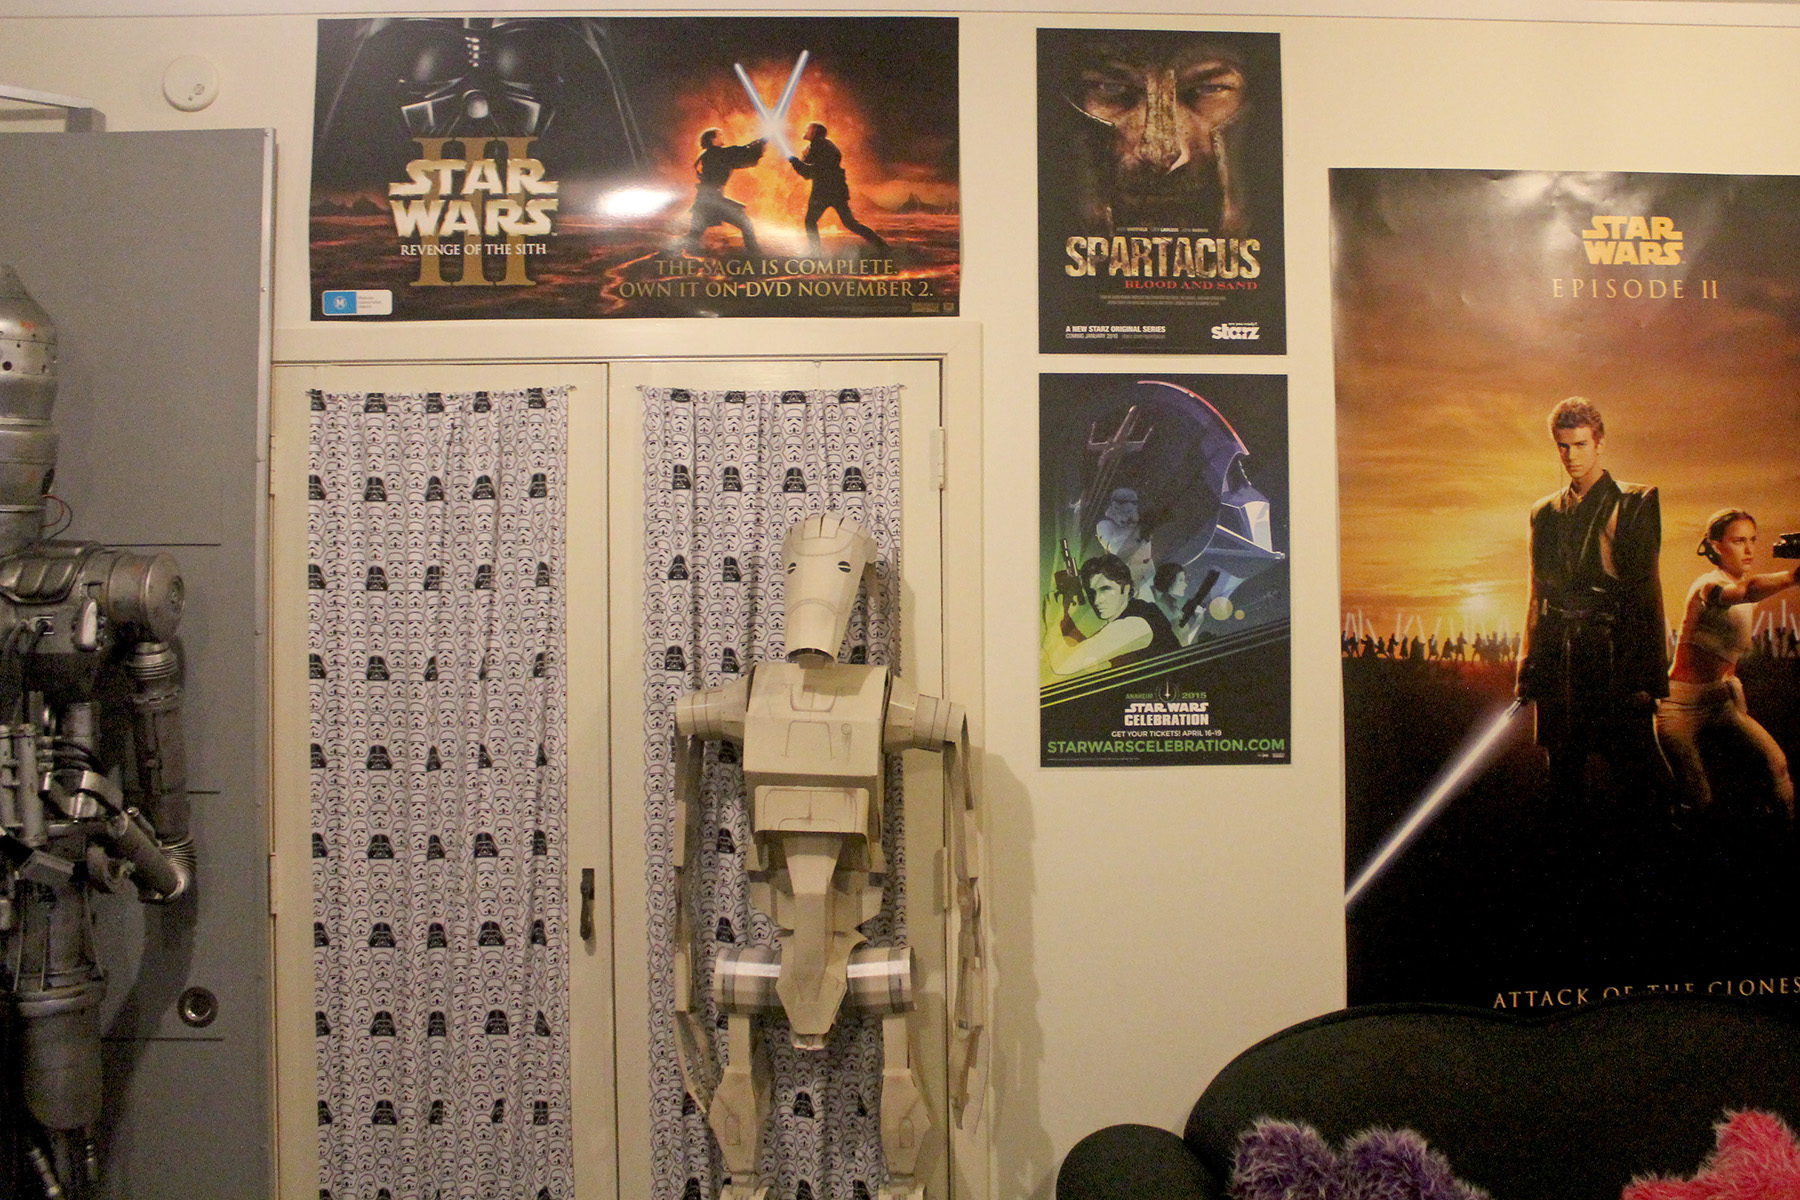 Cardboard Battle Droid, Star Wars curtains, posters